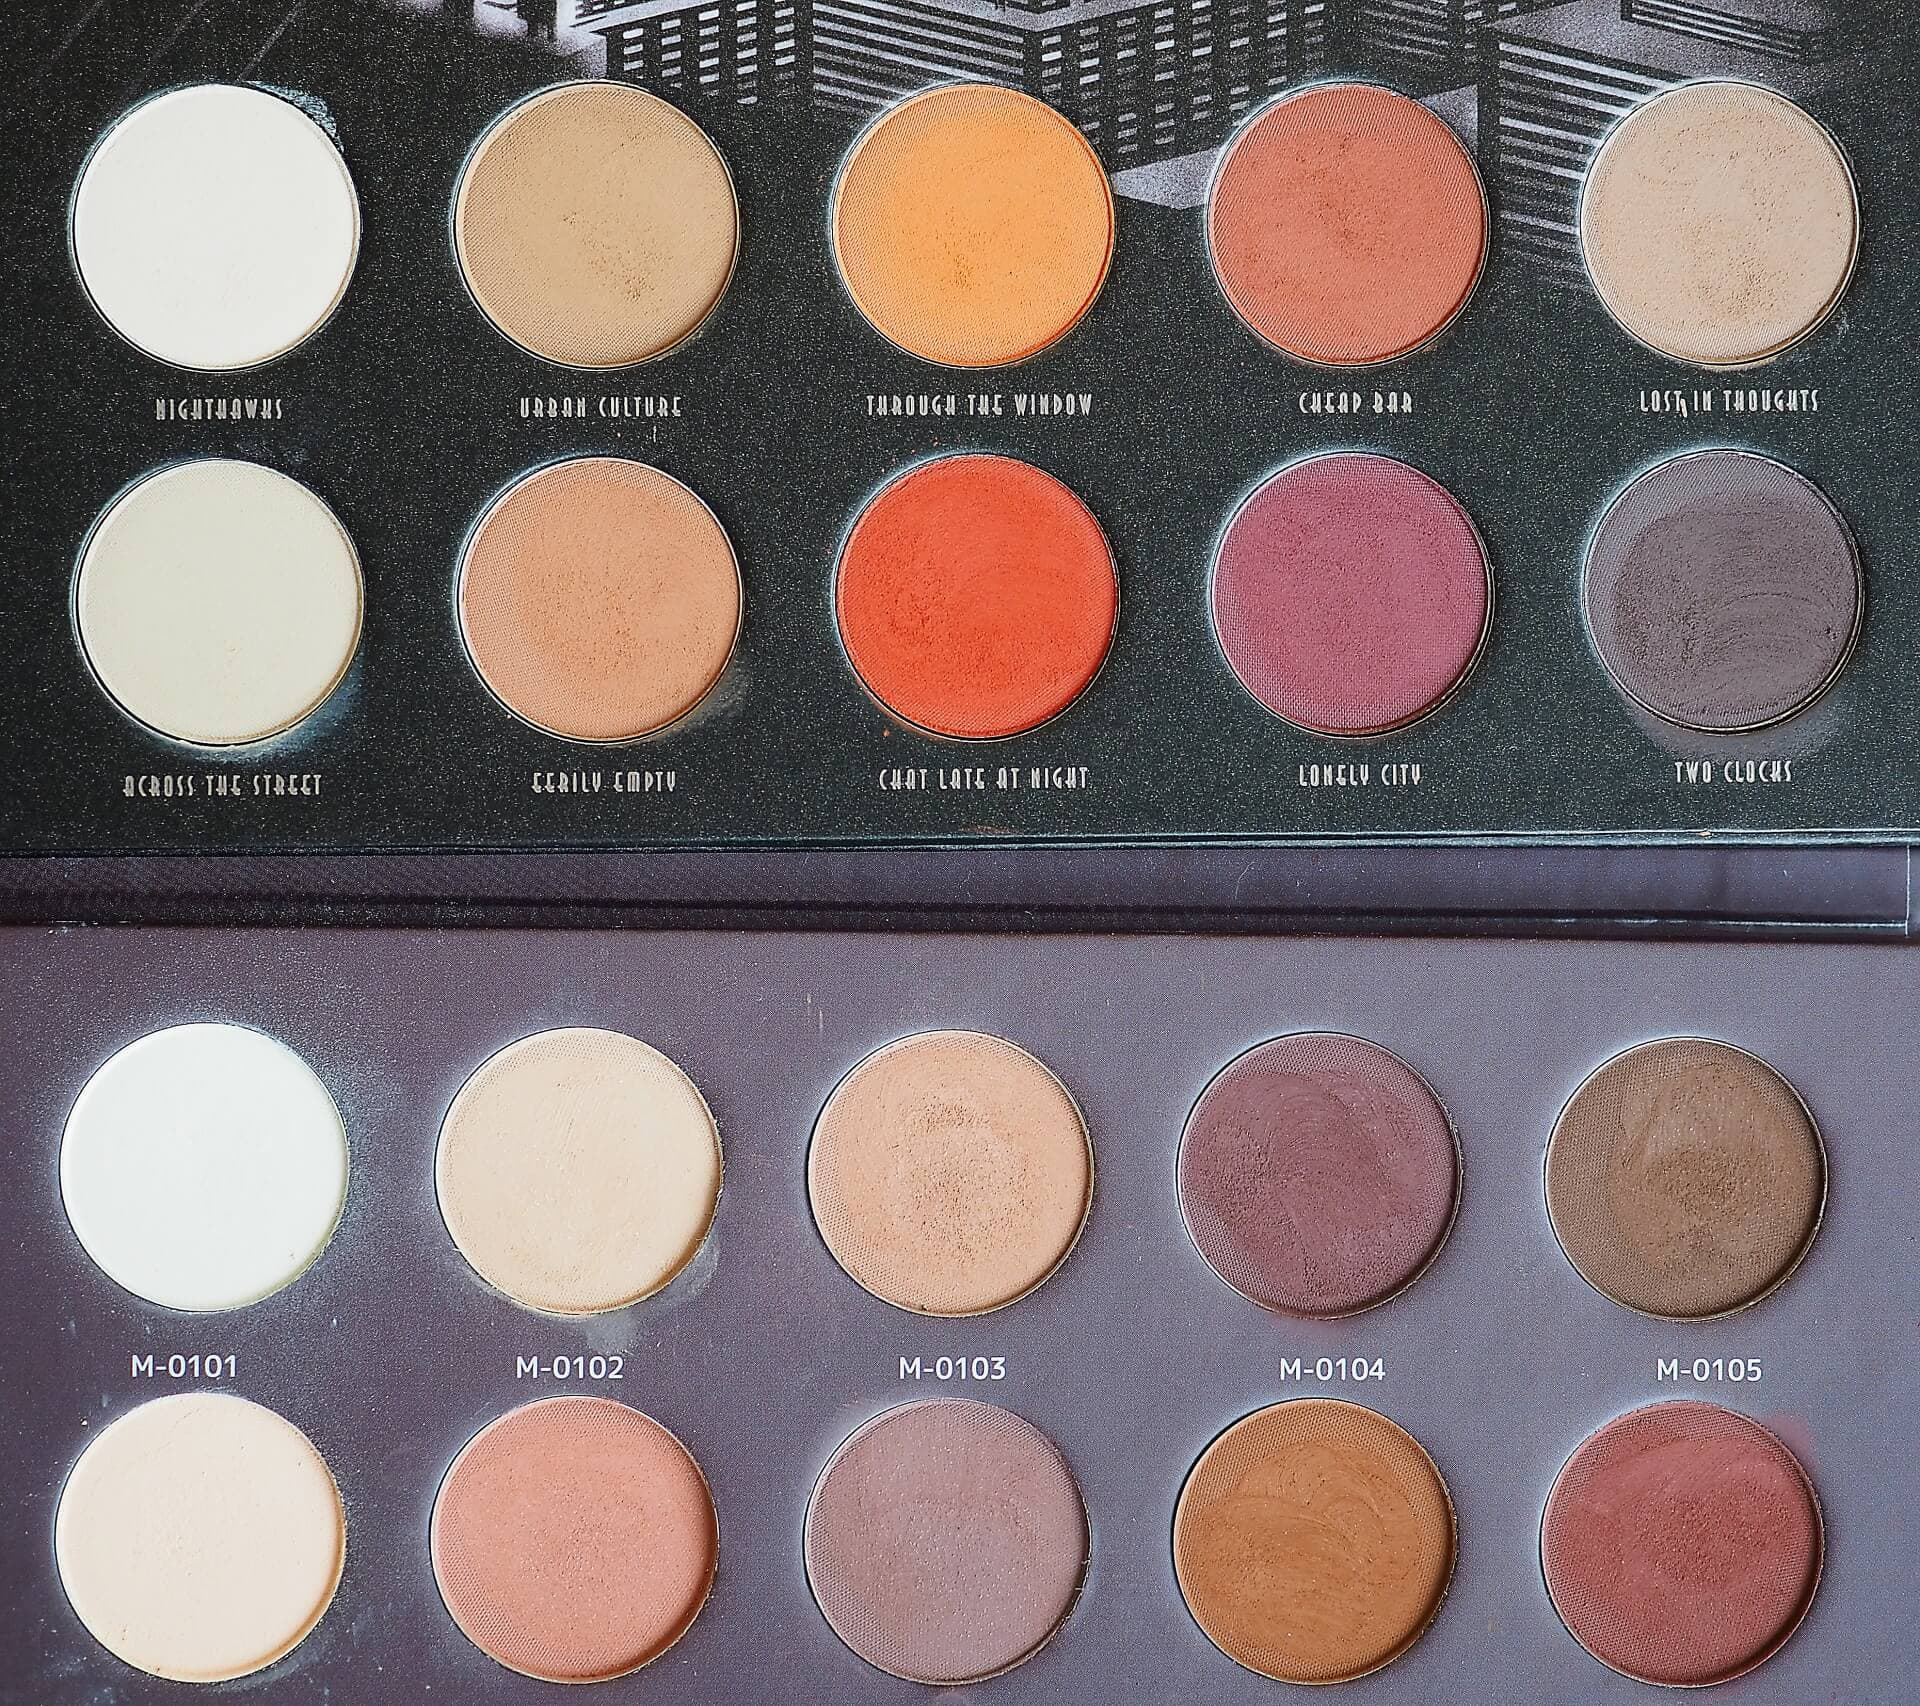 Zoeva Matte vs Affect Naturally Matte